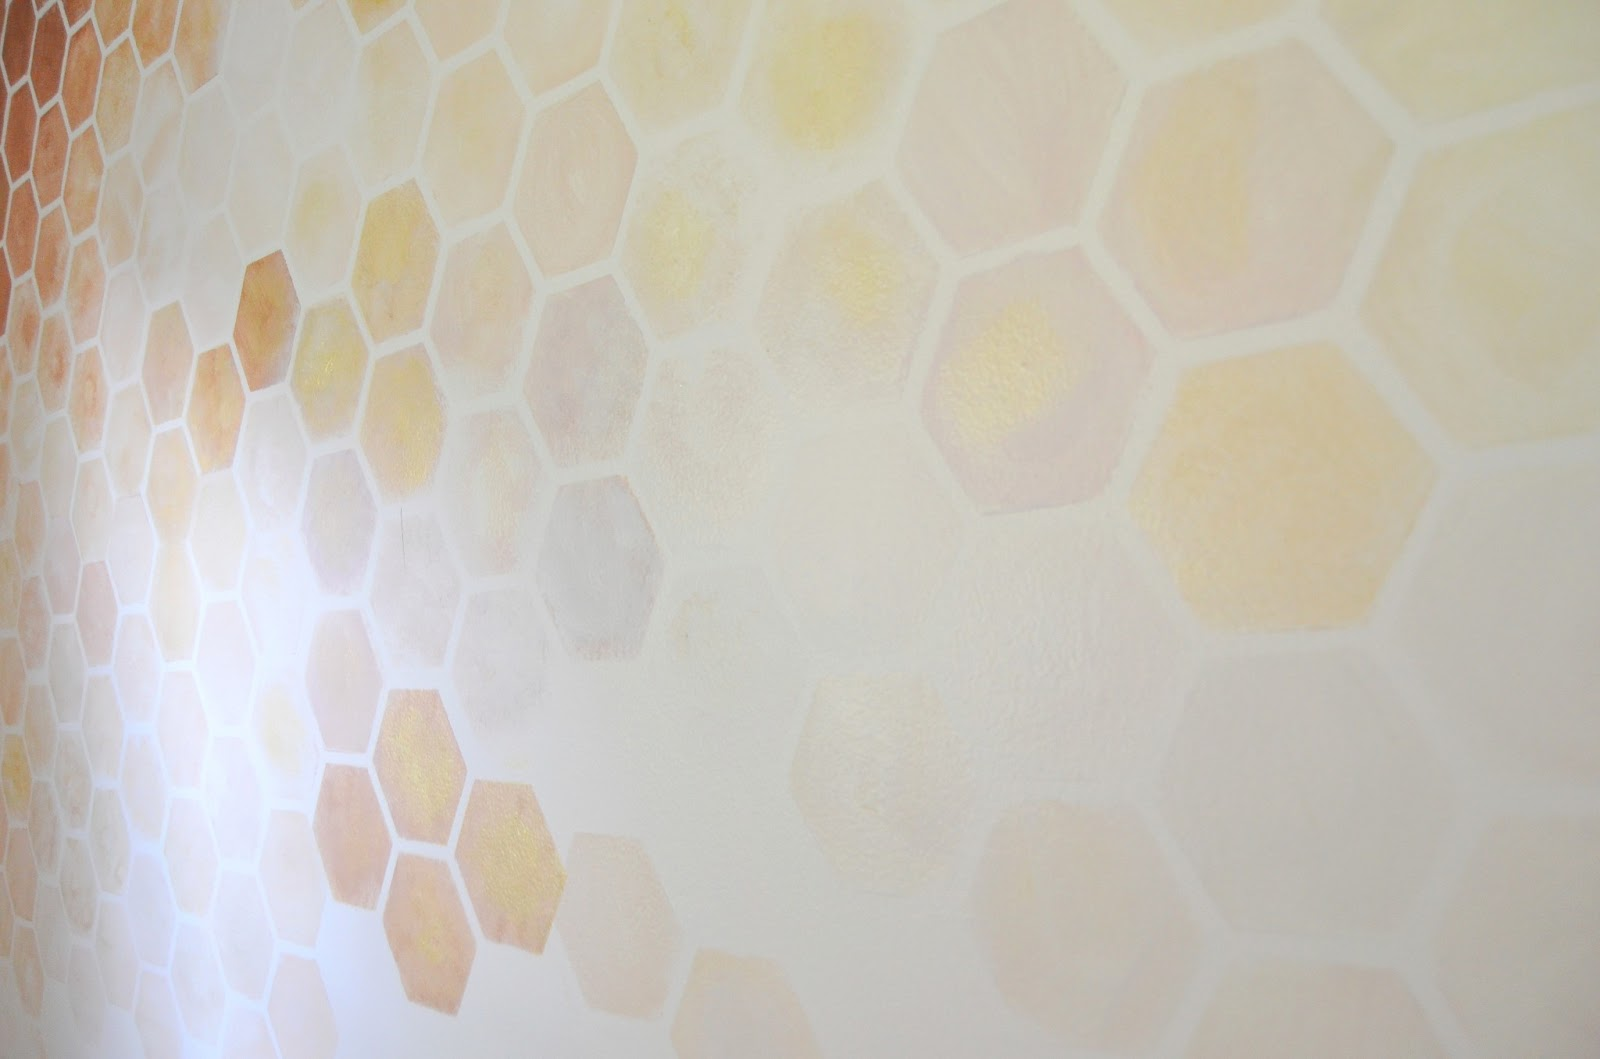 Gold shimmer paint for walls affordable popular house paint great honeycomb wall stencil diy for nursery with gold shimmer paint for walls amipublicfo Choice Image